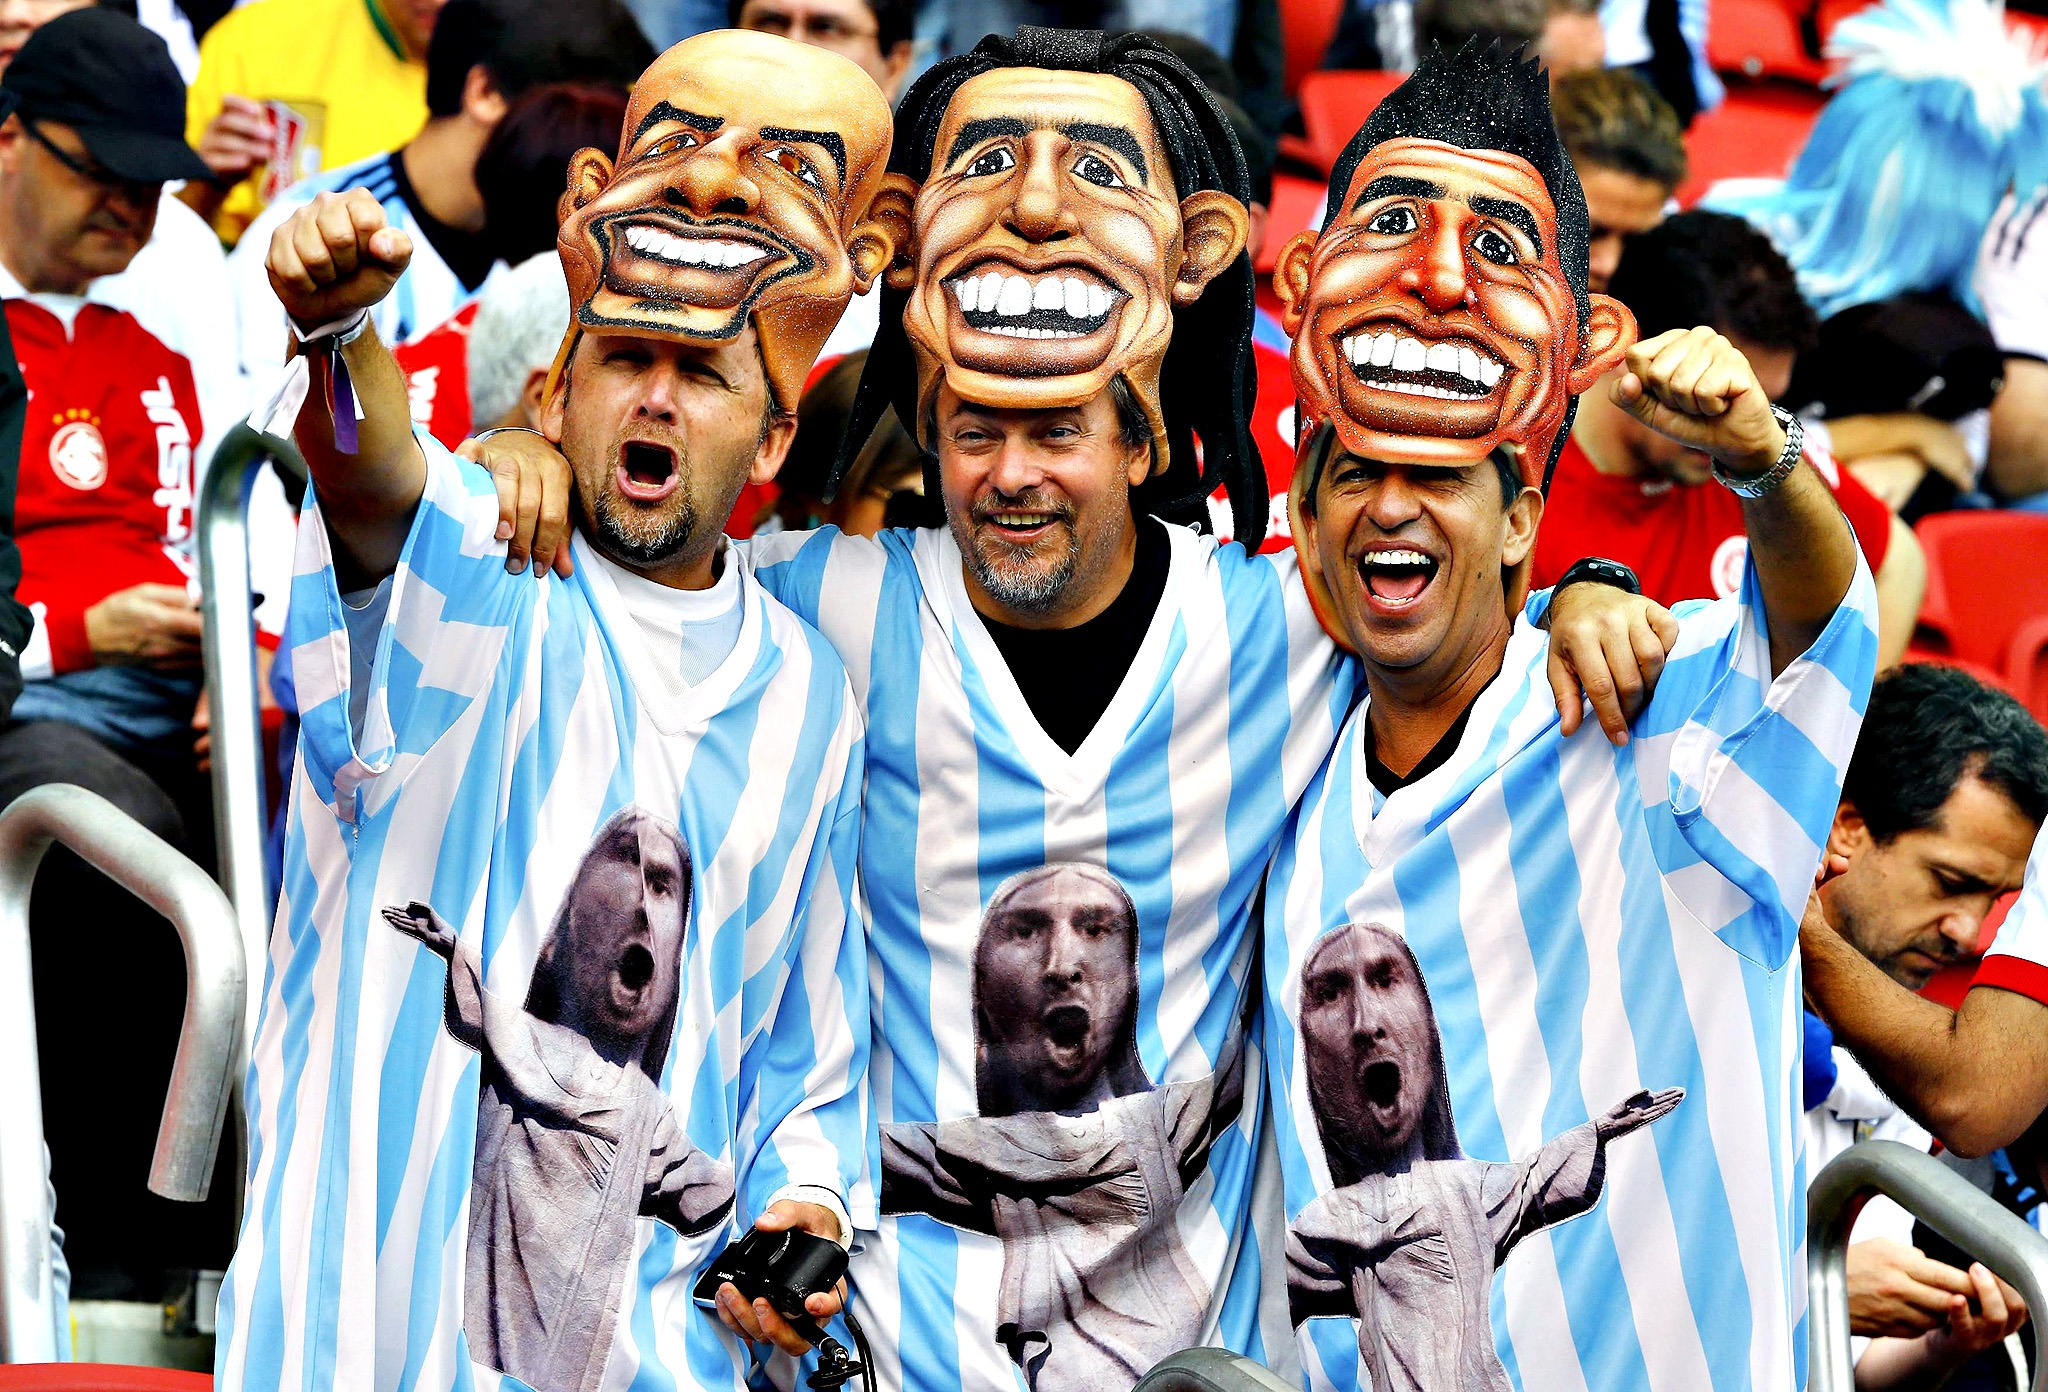 Argentinian fans wear masks as they attend the 2014 World Cup Group F soccer match against Nigeria at the Beira Rio stadium in Porto Alegre June 25, 2014.